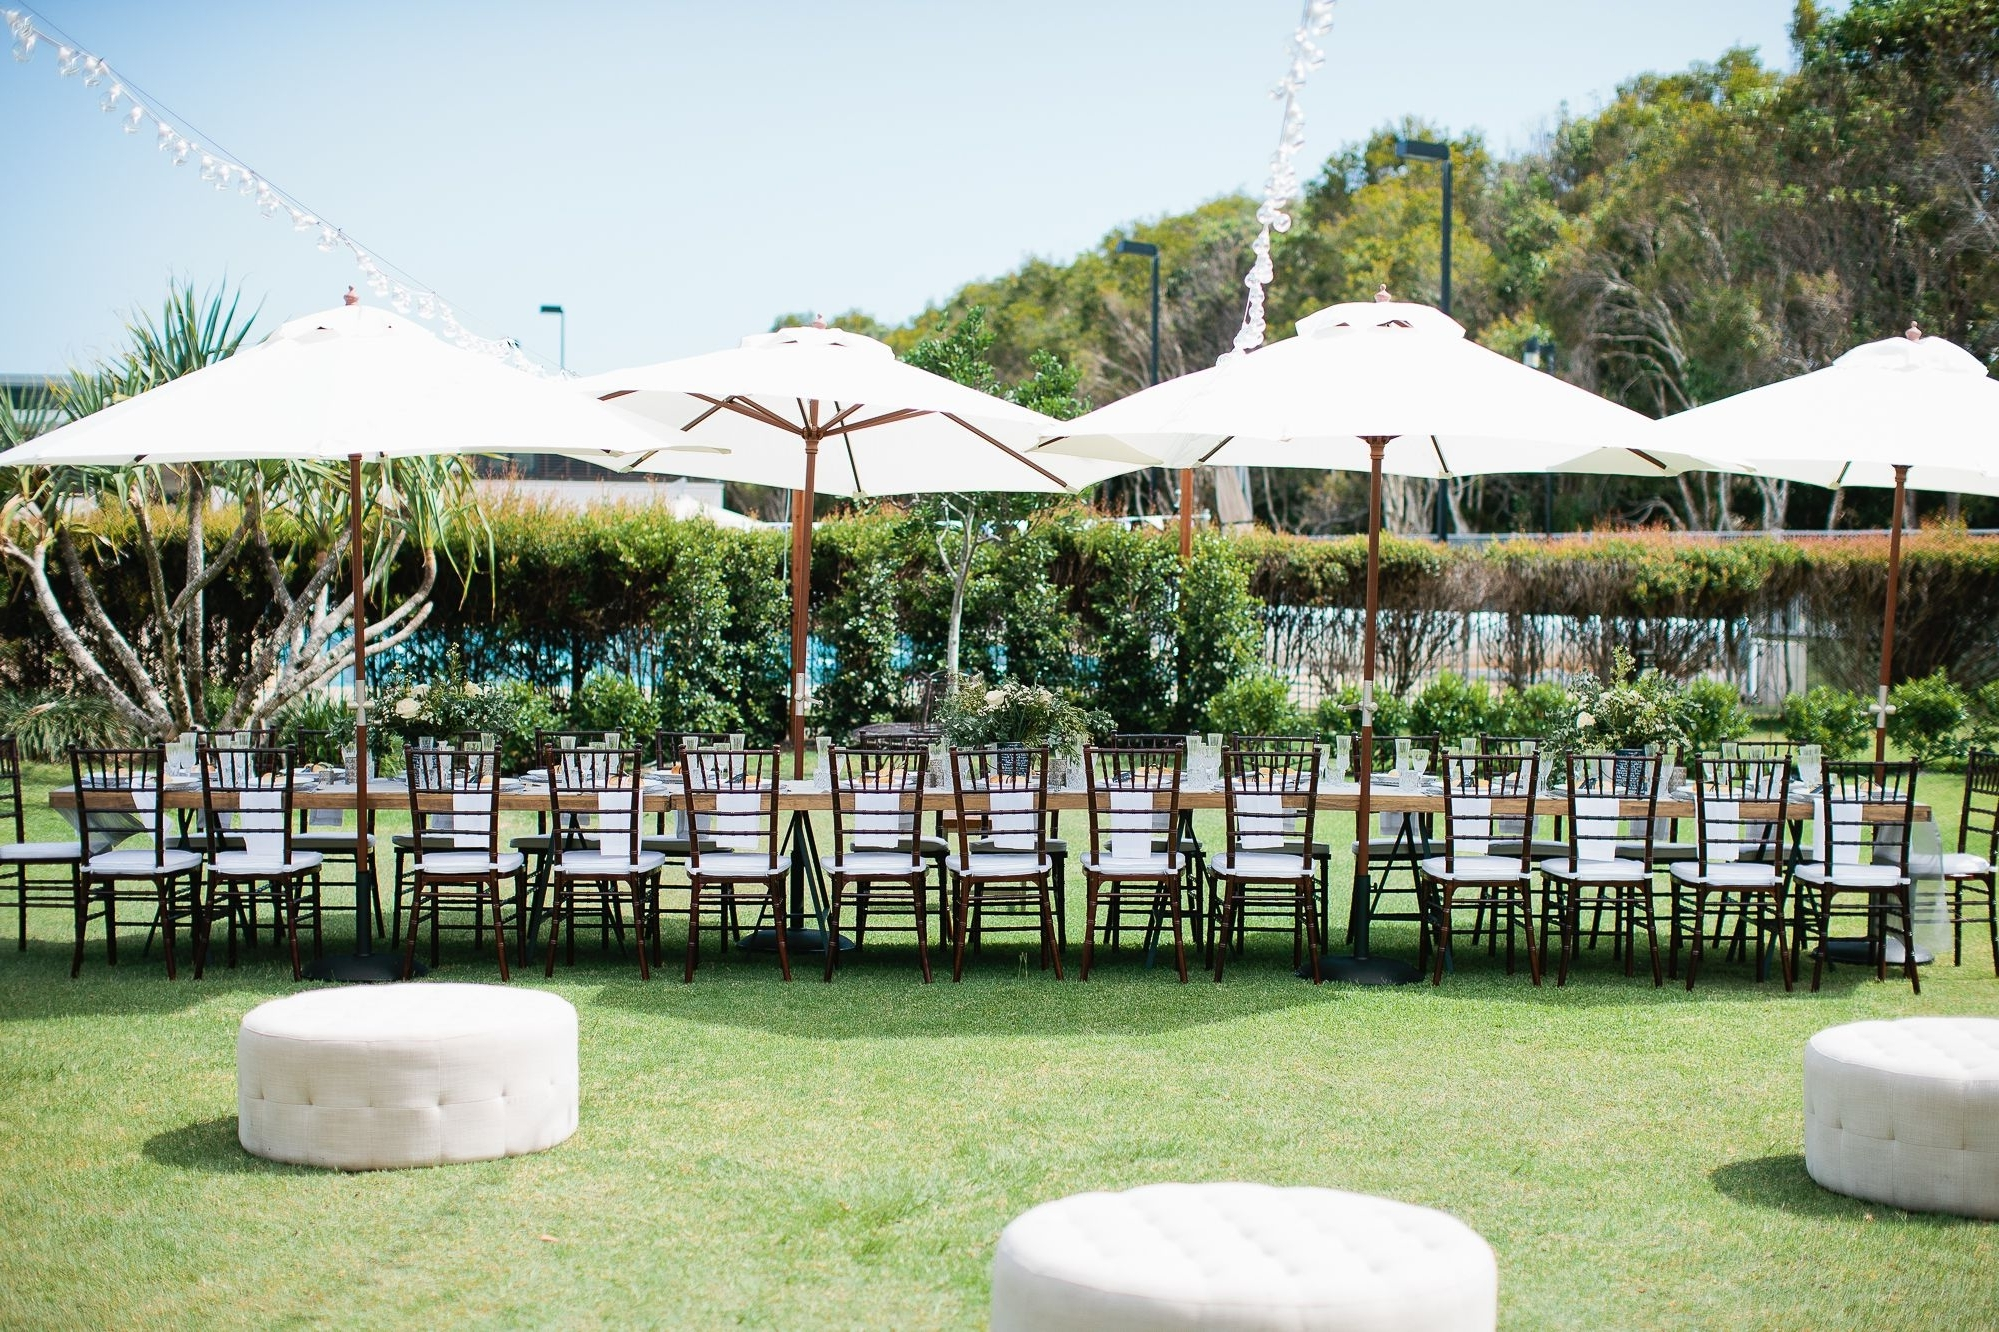 Gold Coast Patio Umbrellas Throughout Most Current Hampton Event Hire // White Market Umbrellas / Long Wooden Dining (View 10 of 20)